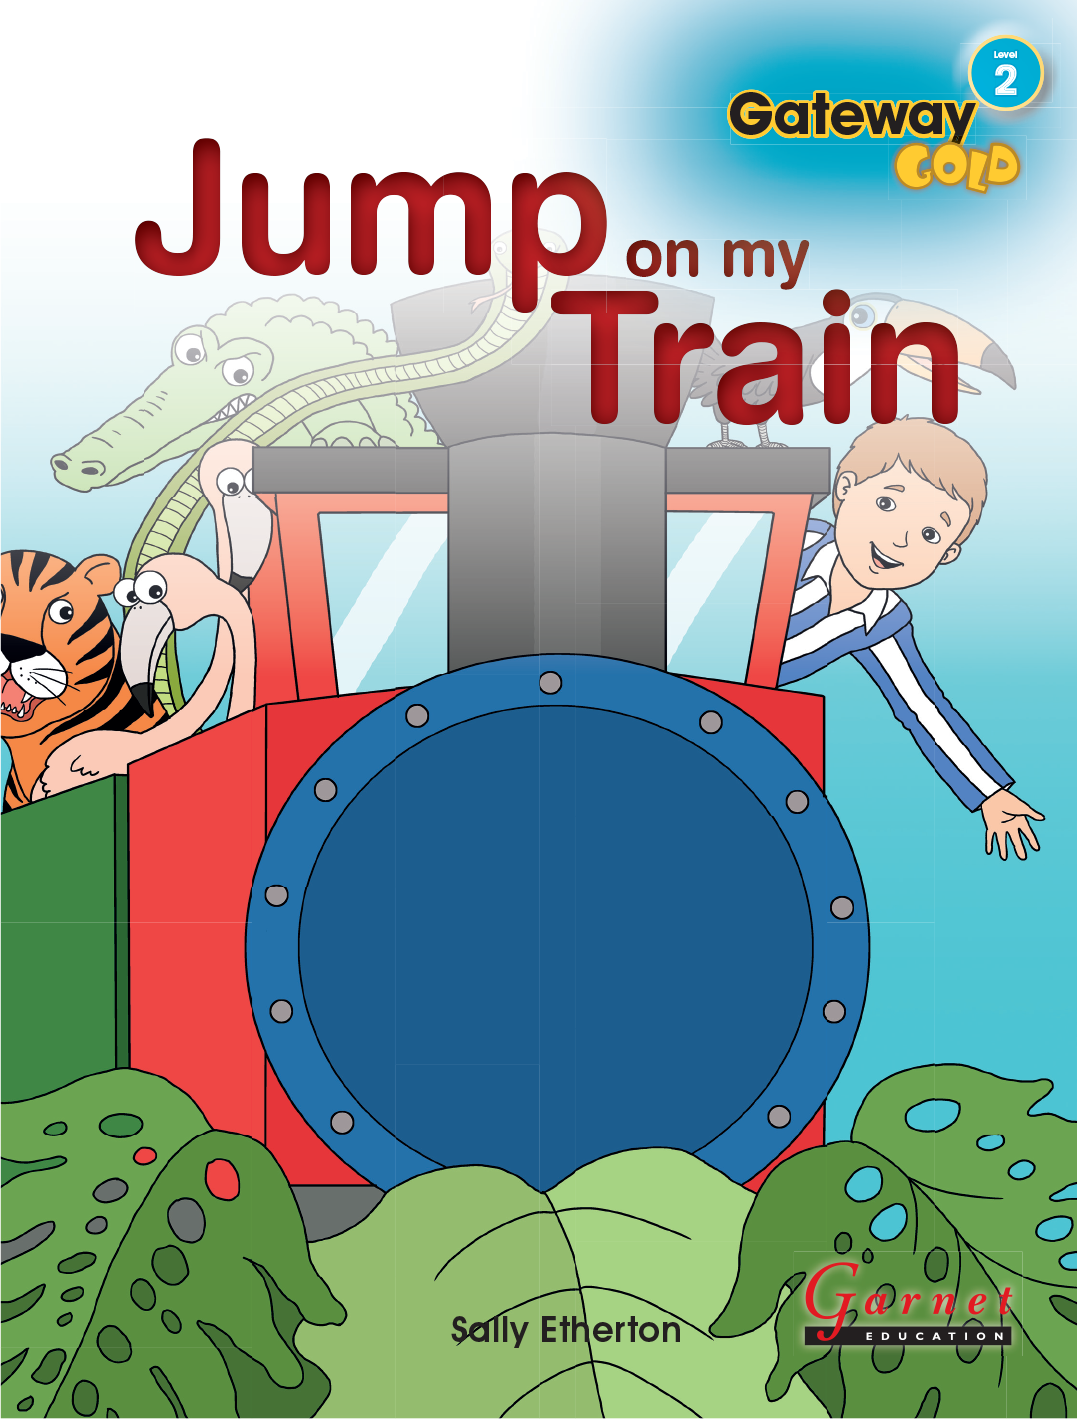 Gateway Gold Level 2 Big Book 2 with audio CD - Jump on my Train